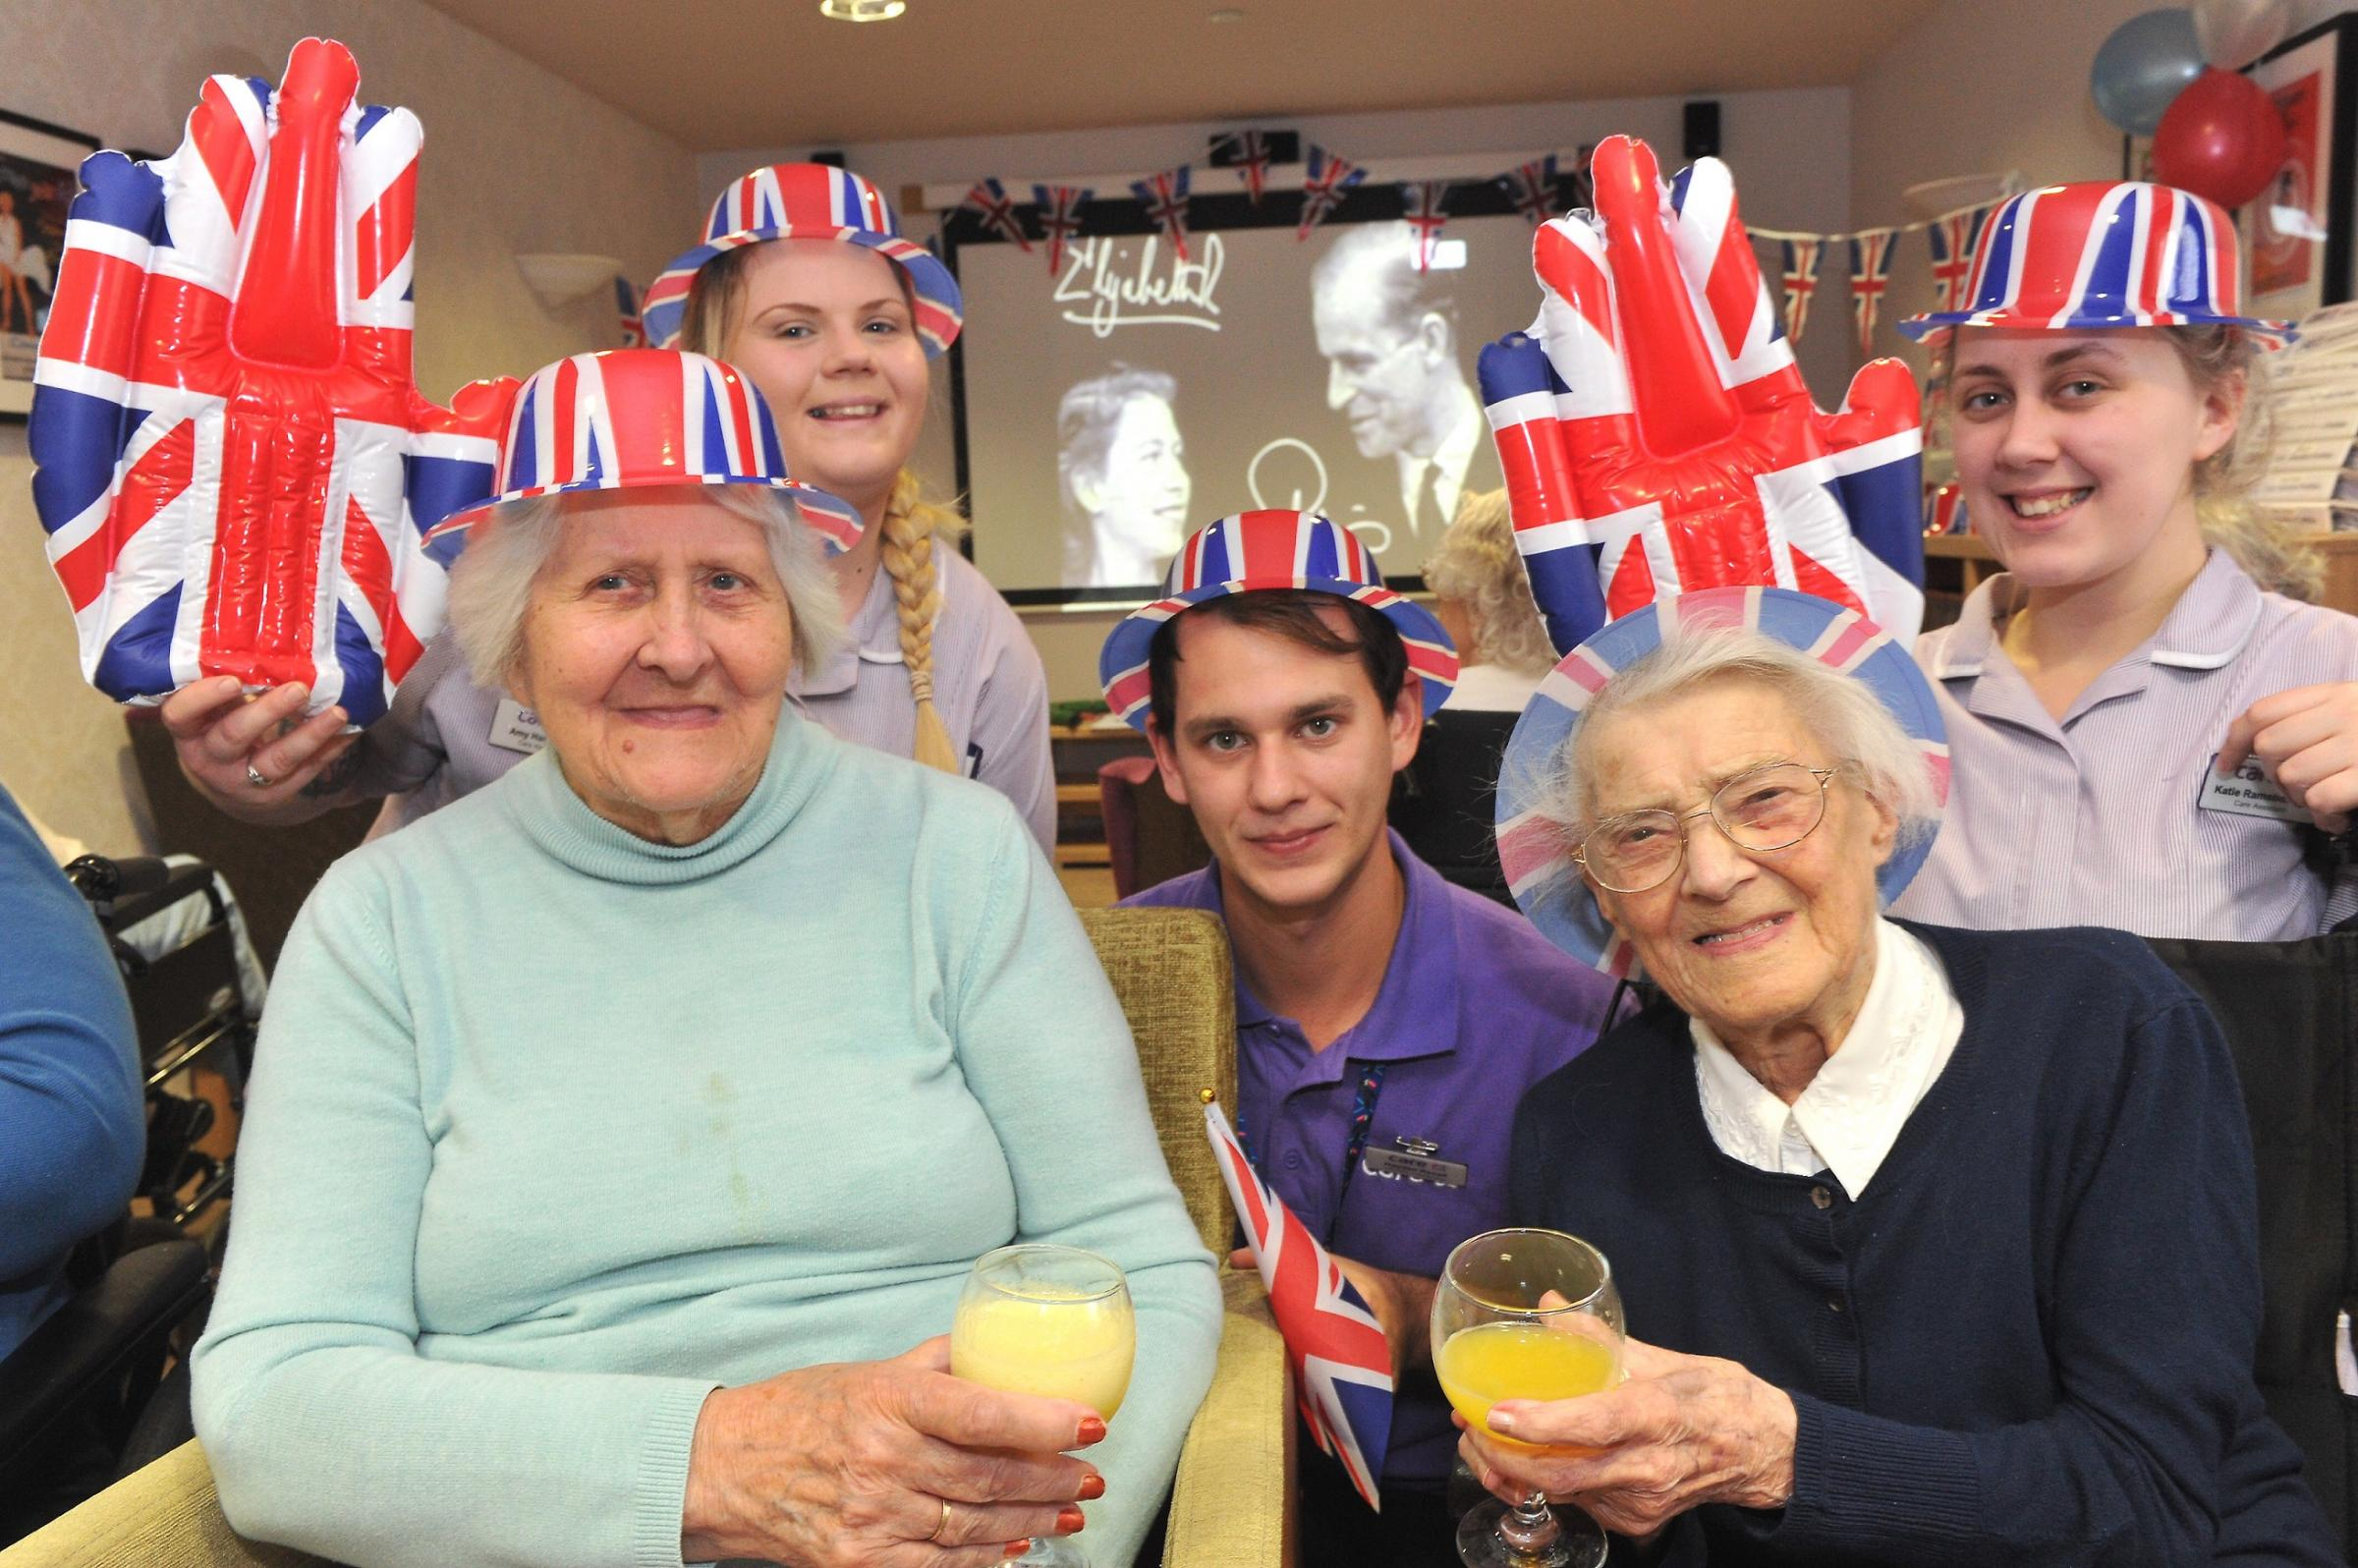 Care home's Royal Wedding party invitation to community